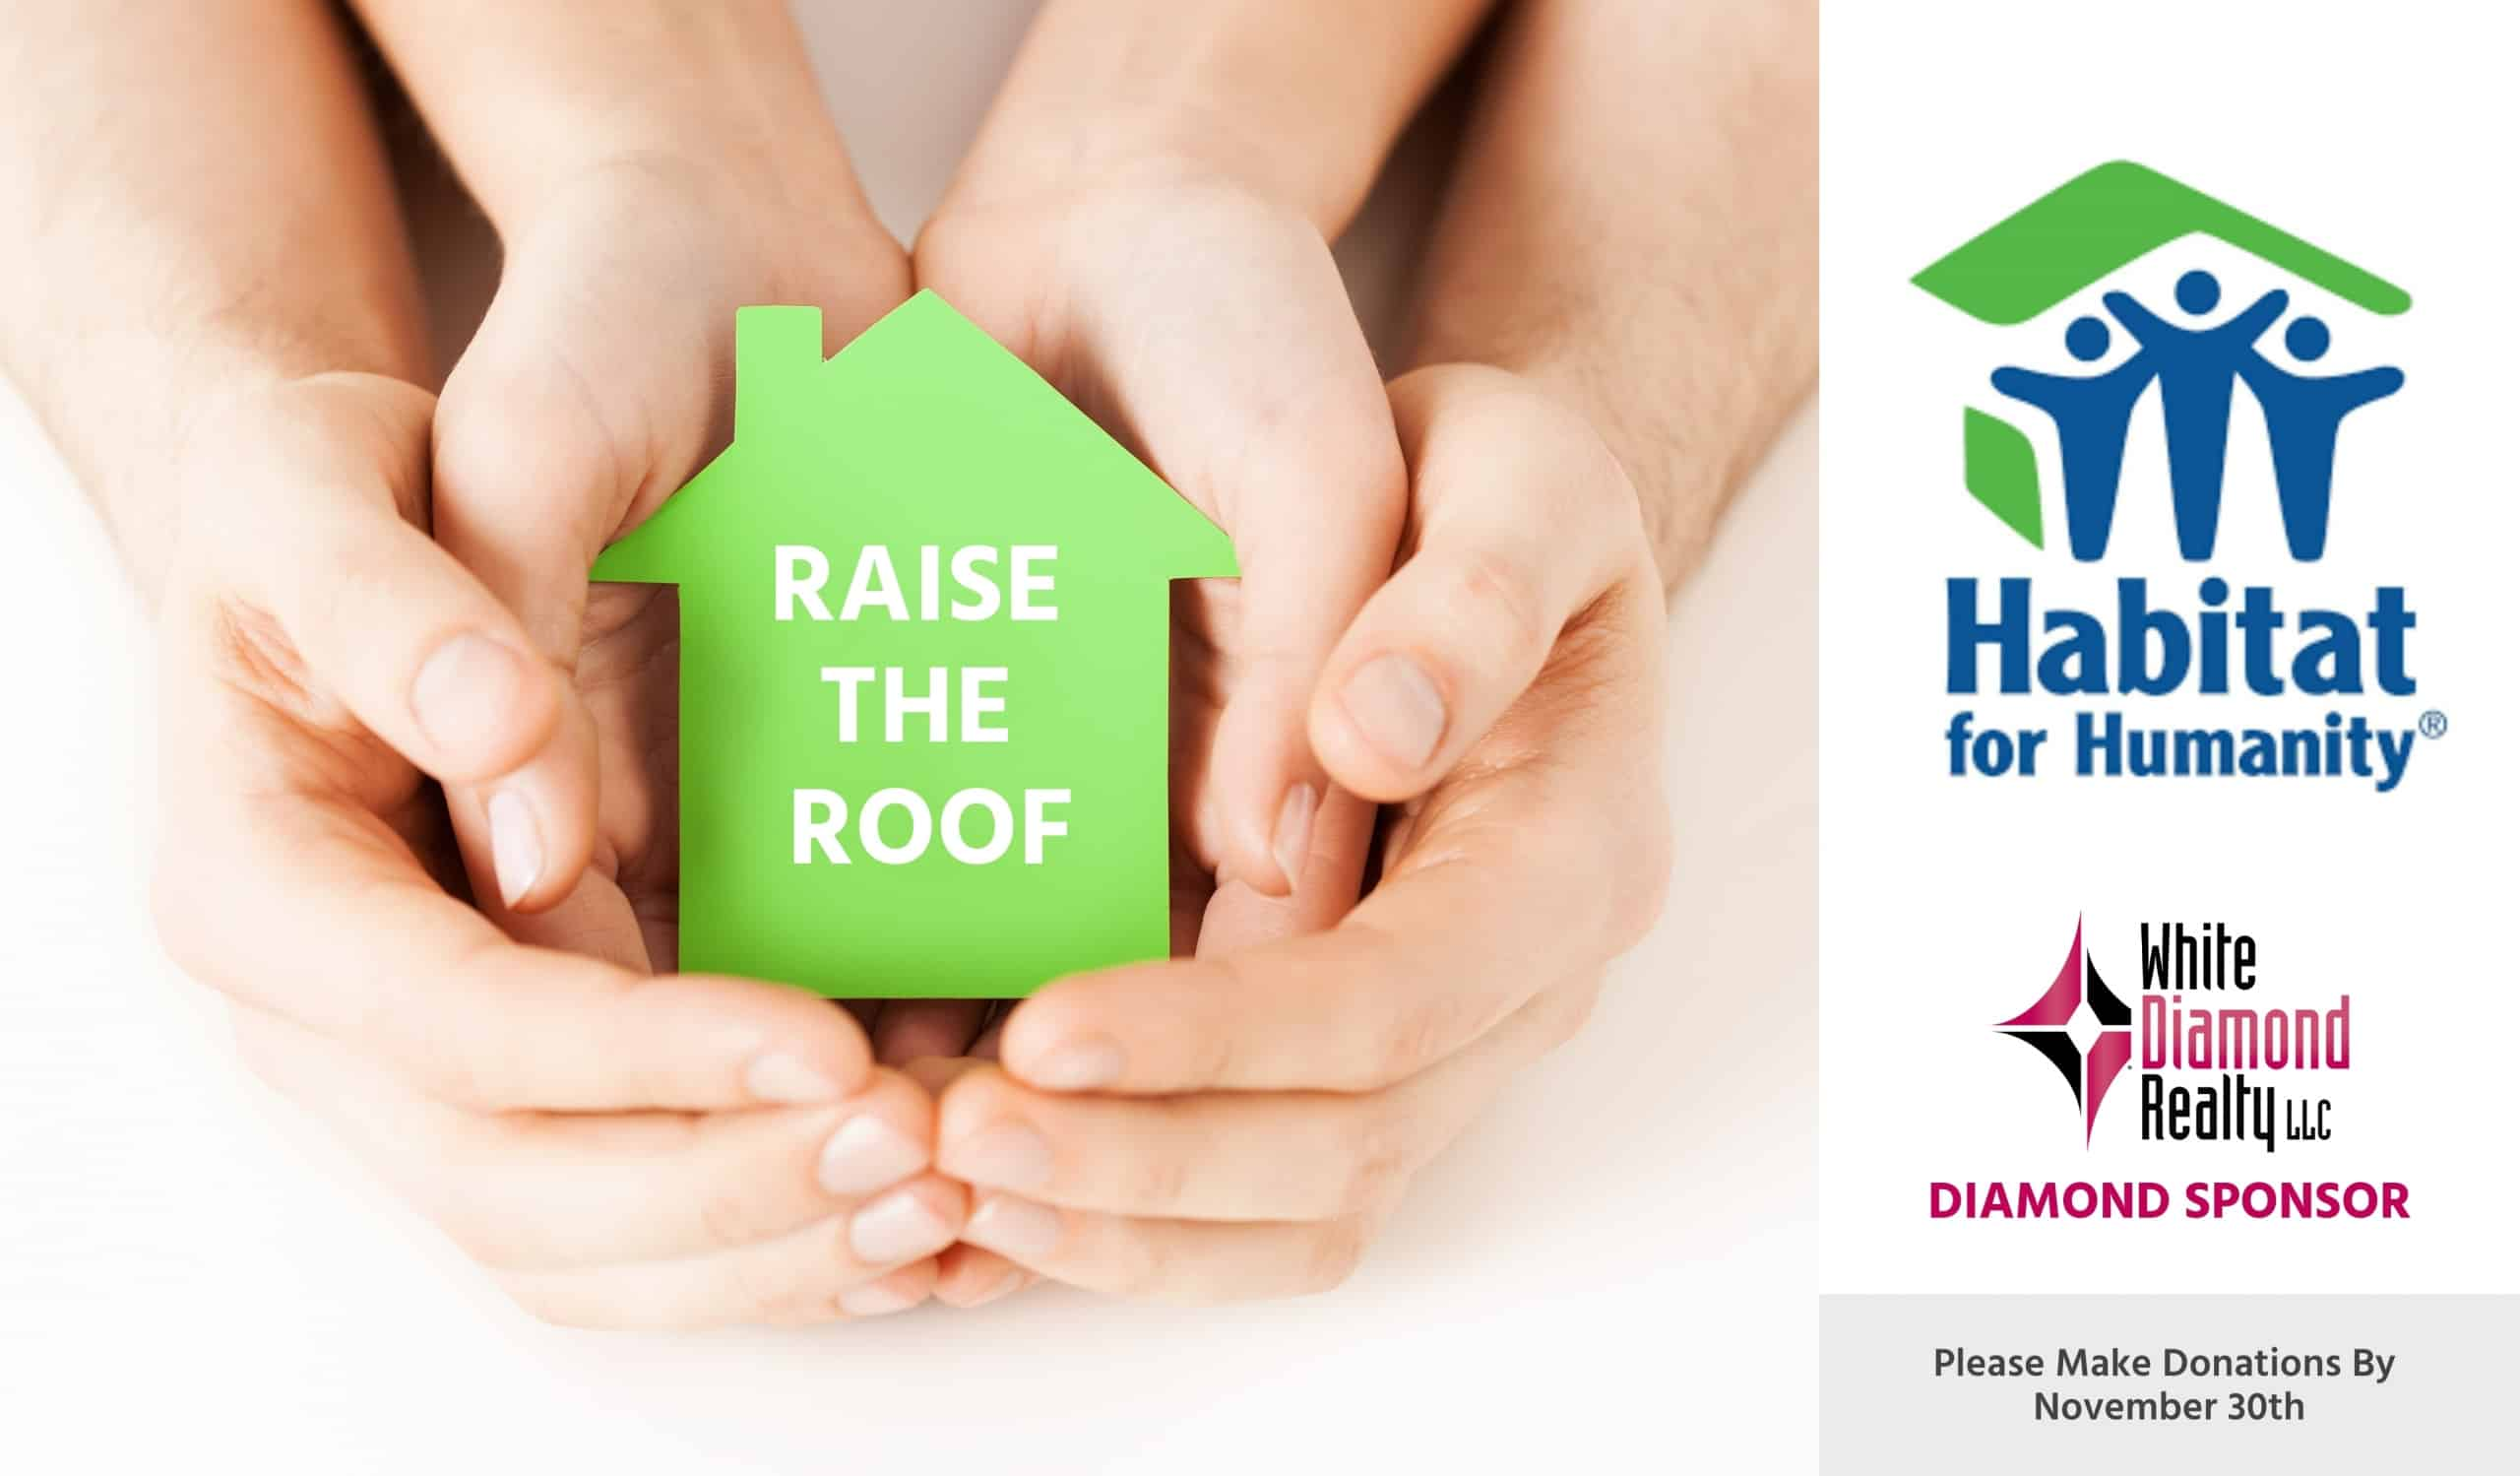 White-Diamond-Sponsors-Habitat-For-Humanity-Raise-The-Roof-as-Diamond-Sponsor